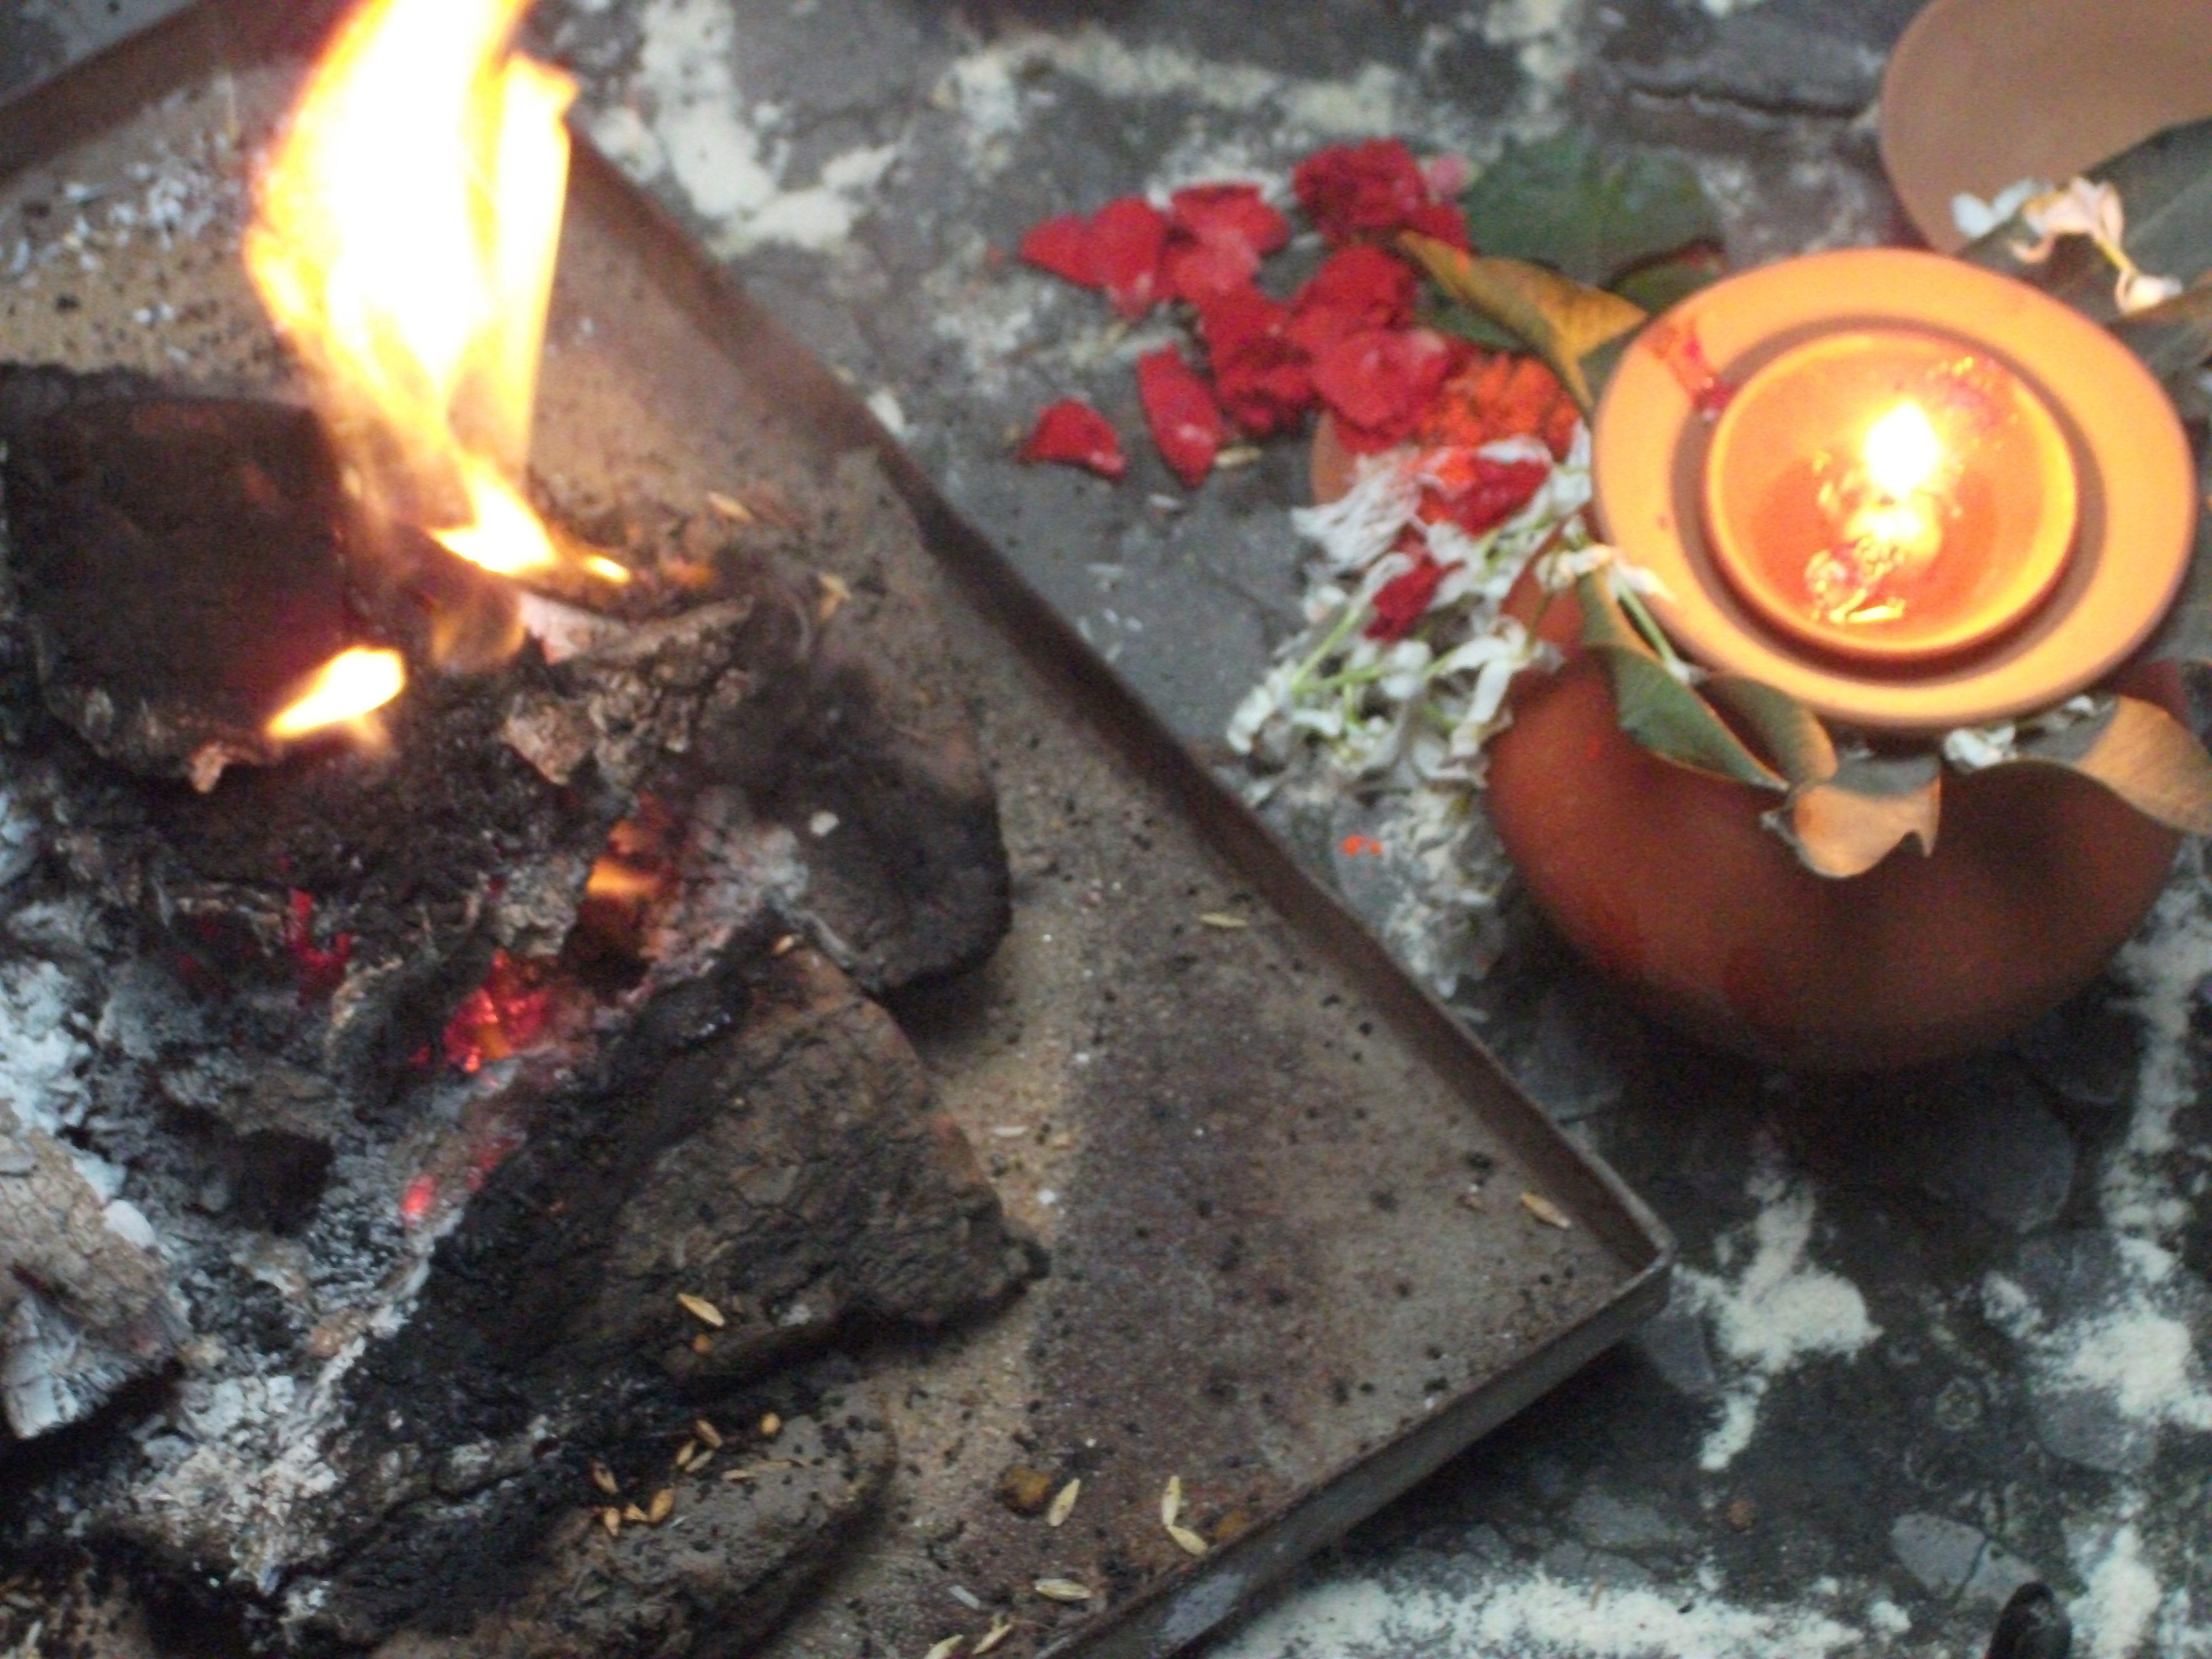 hindu death rituals It is an educational video about hindu thoughts an hindu beliefs on death and dying rituals and its effects after death.